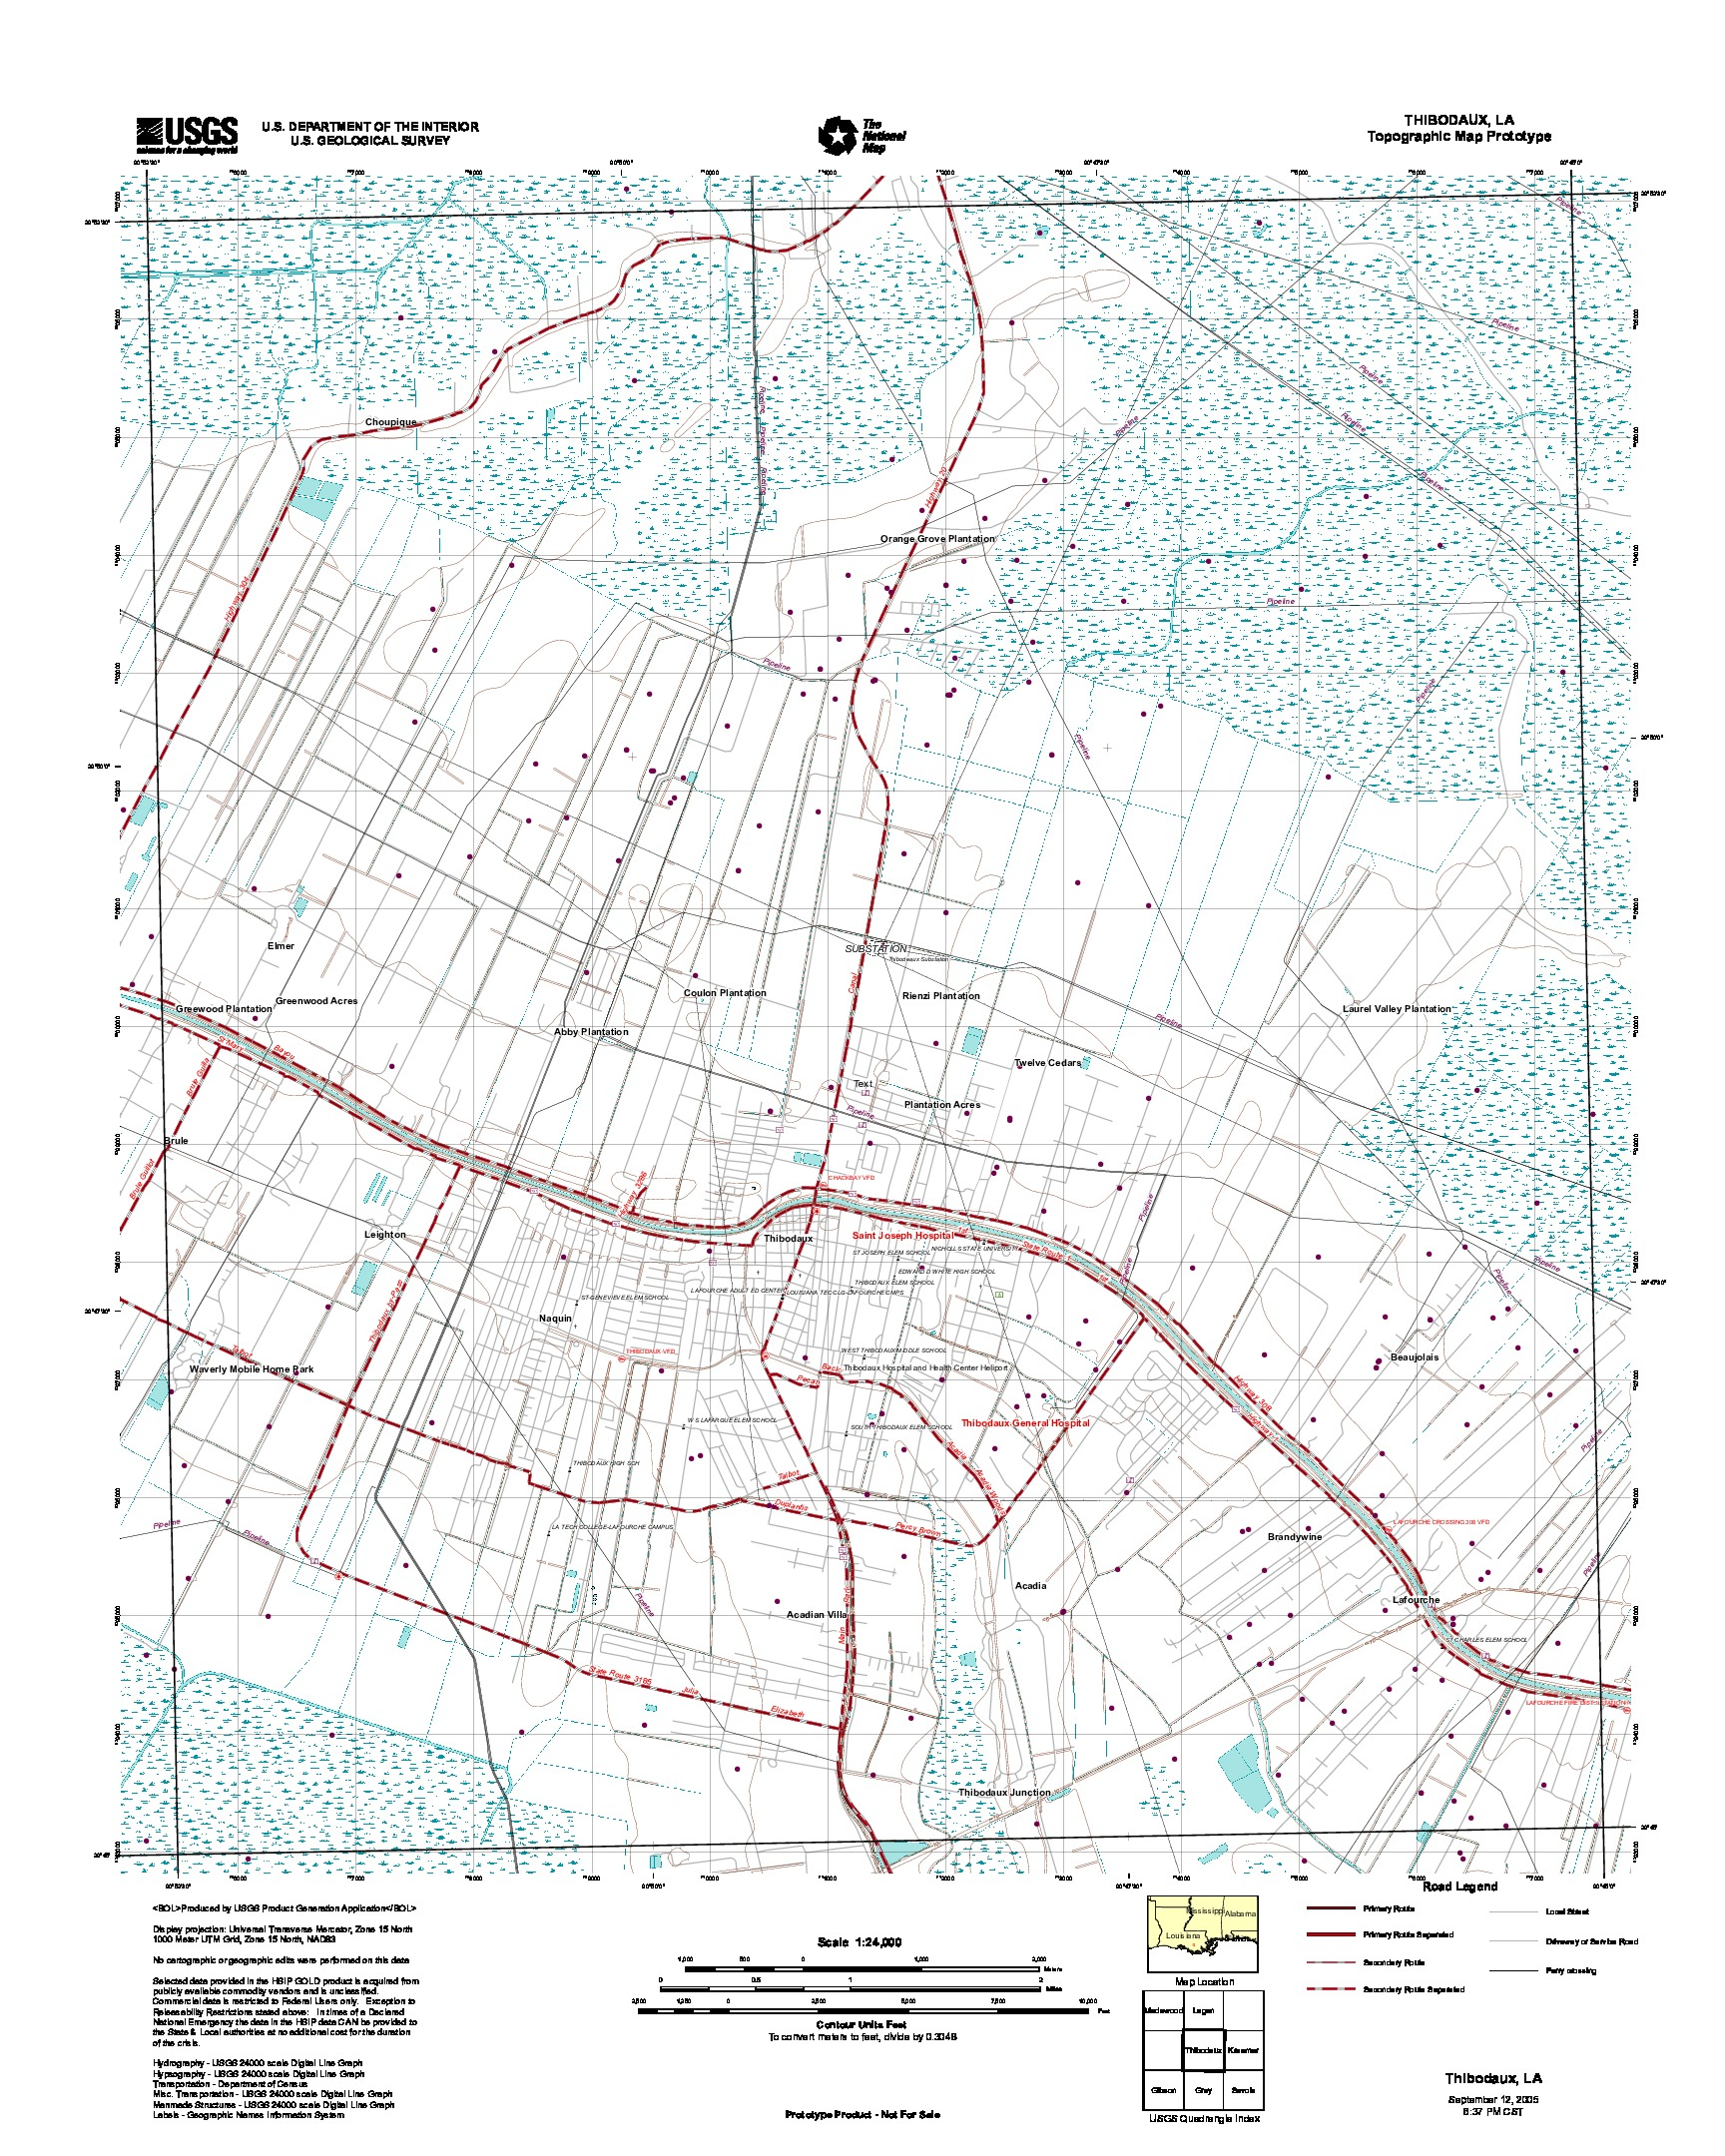 Thibodaux, Topographic Map Prototype, Louisiana, United States, September 12, 2005